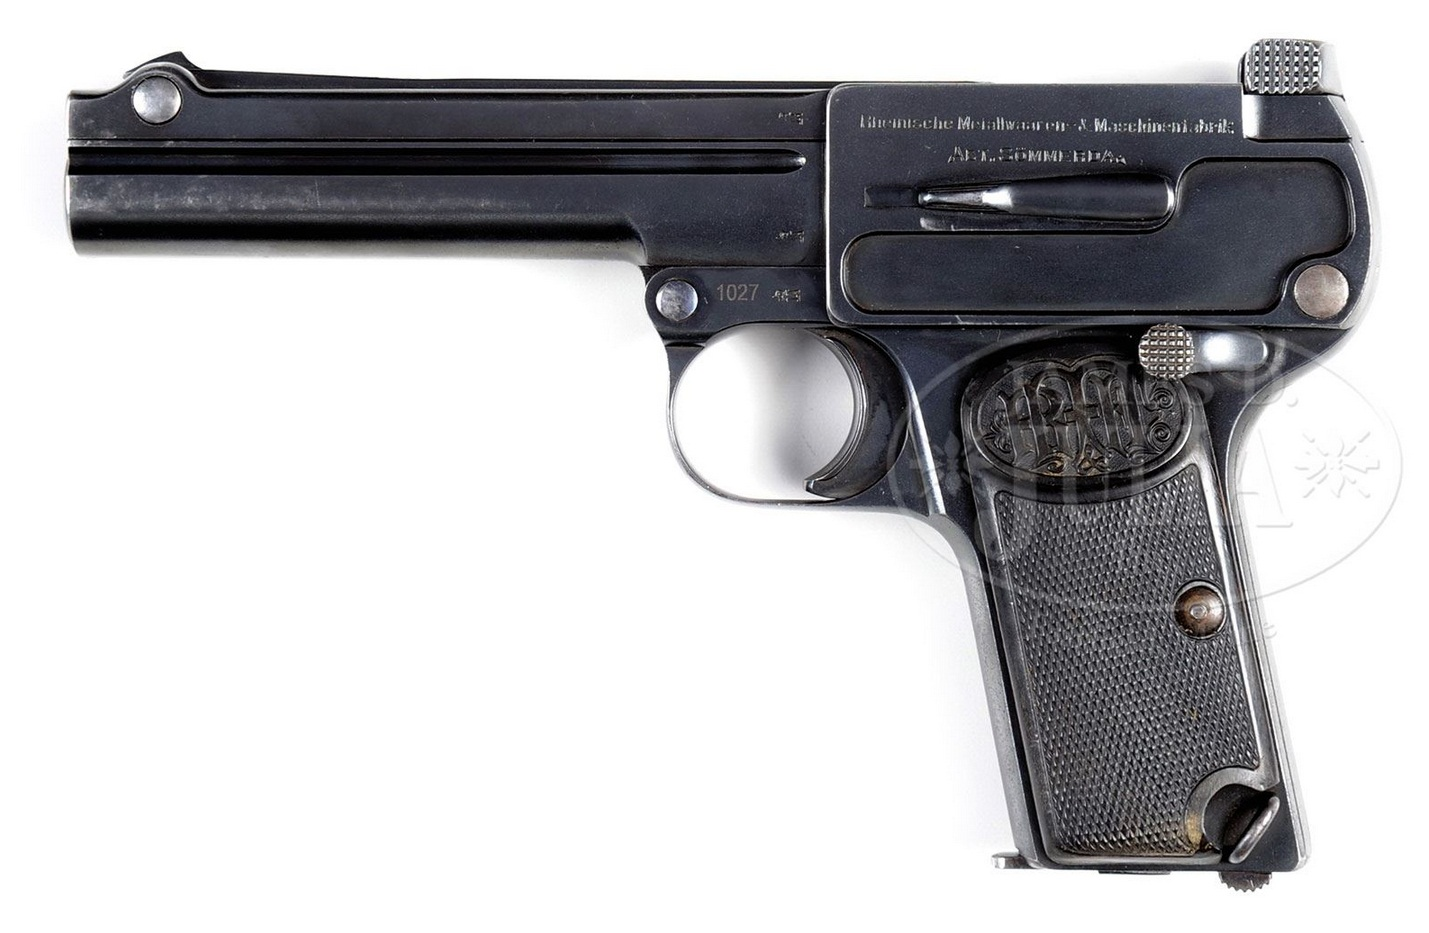 Dreyse 9mm pistol Model 1910